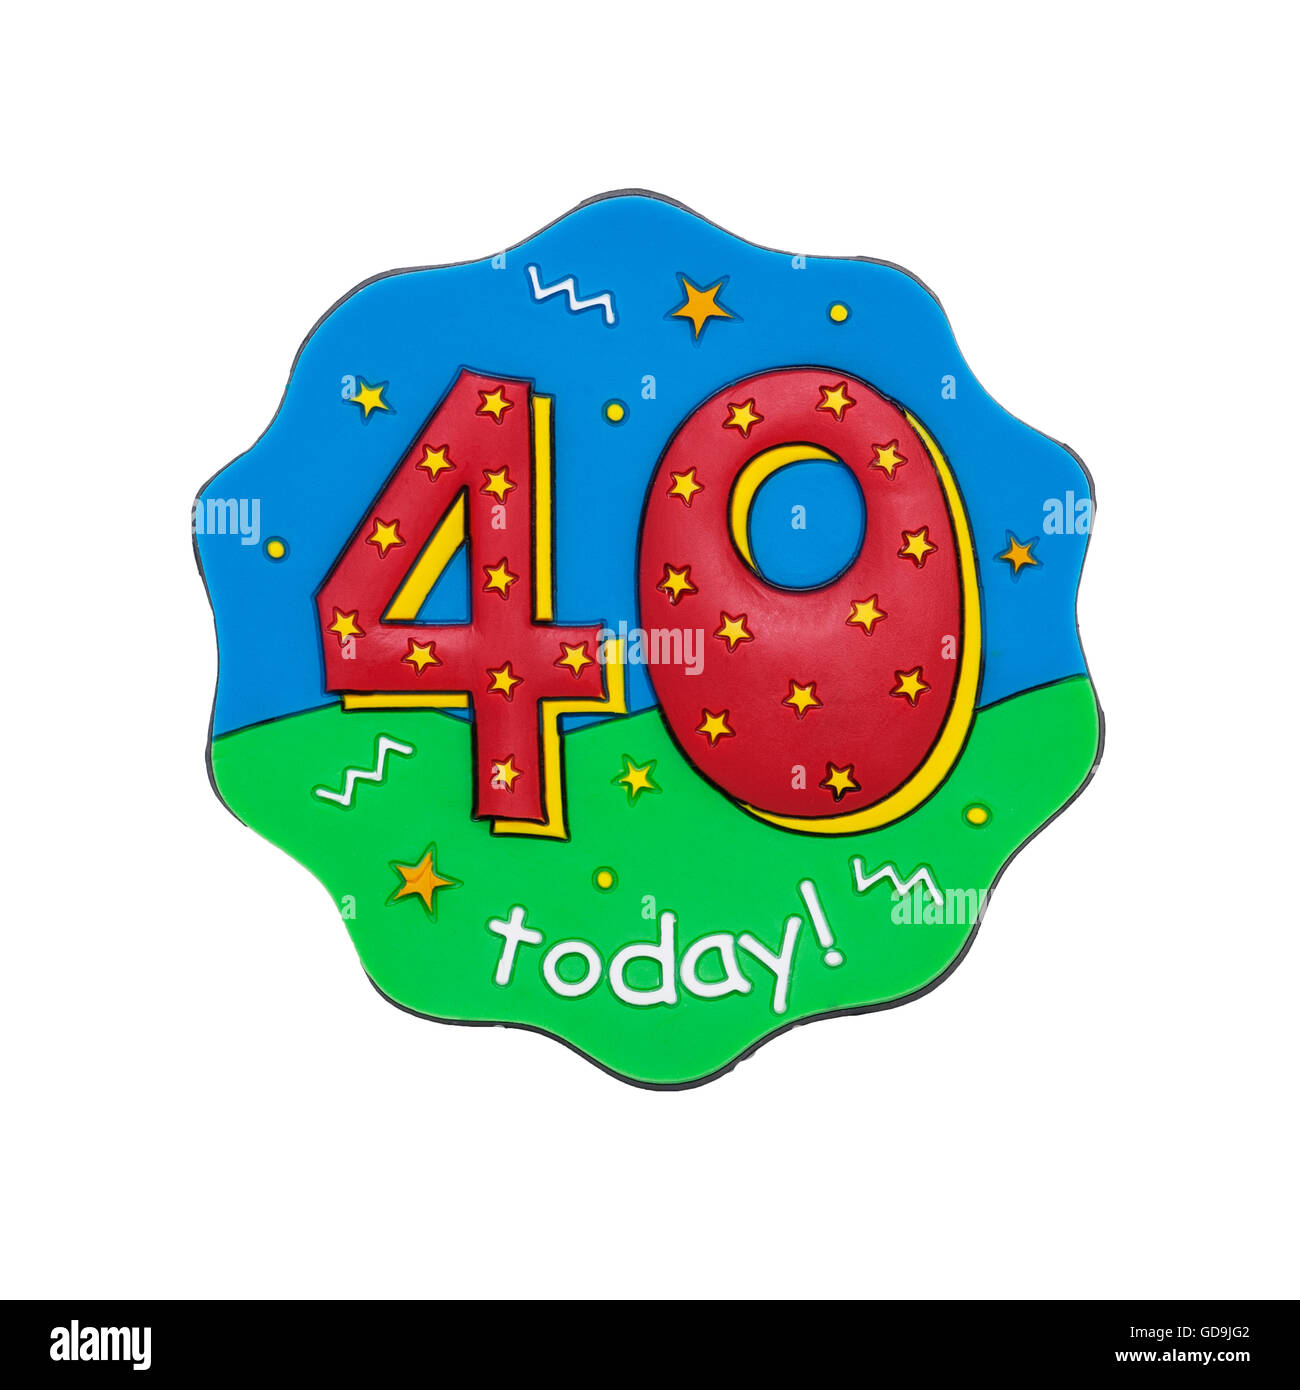 A 40 today birthday badge on a white background - Stock Image